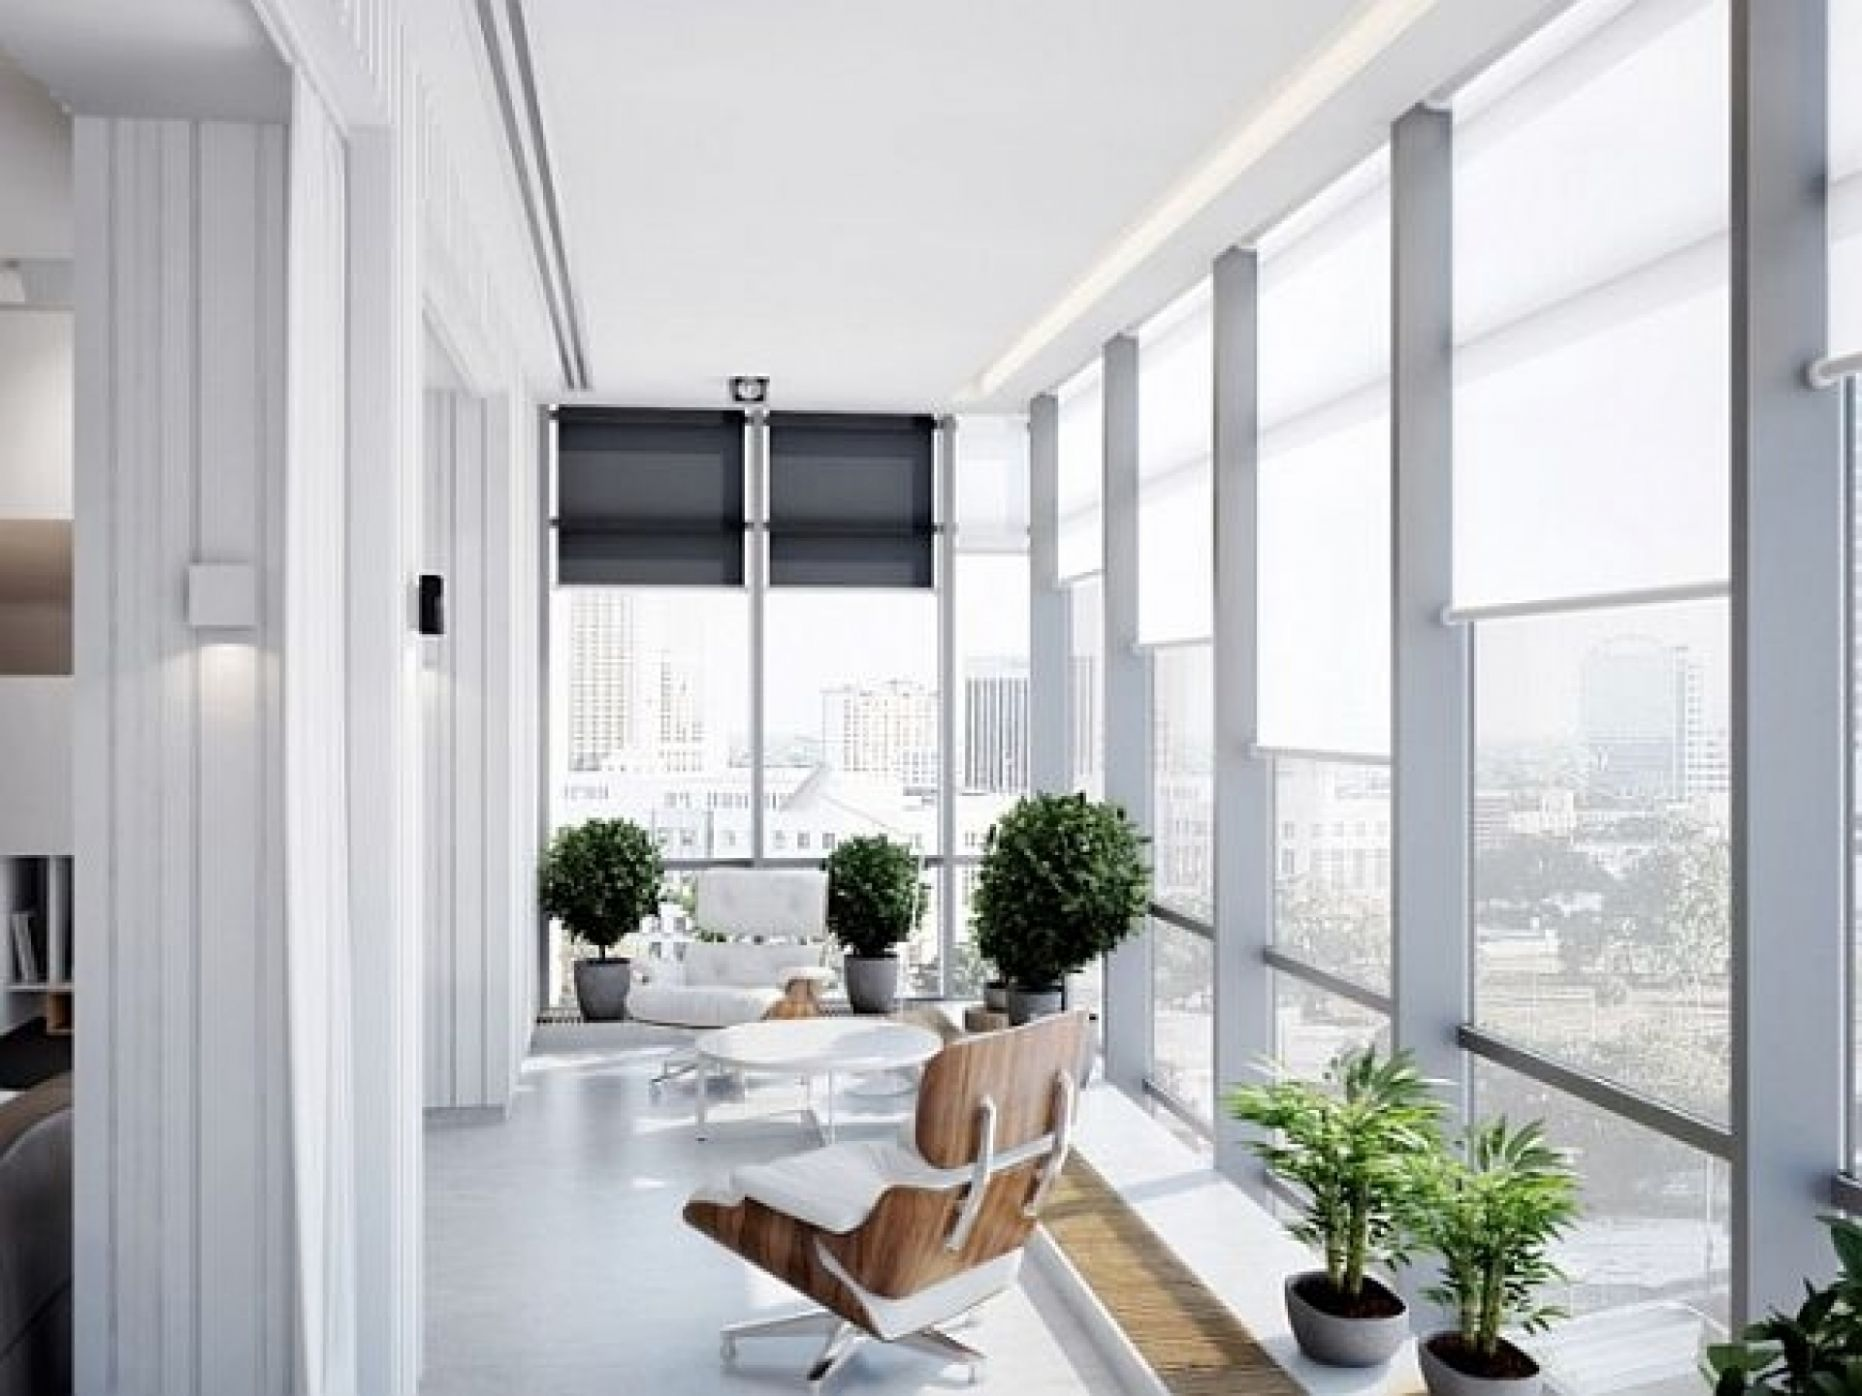 Furniture: Modern Indoor Sunroom Furniture With Interior Potted ..